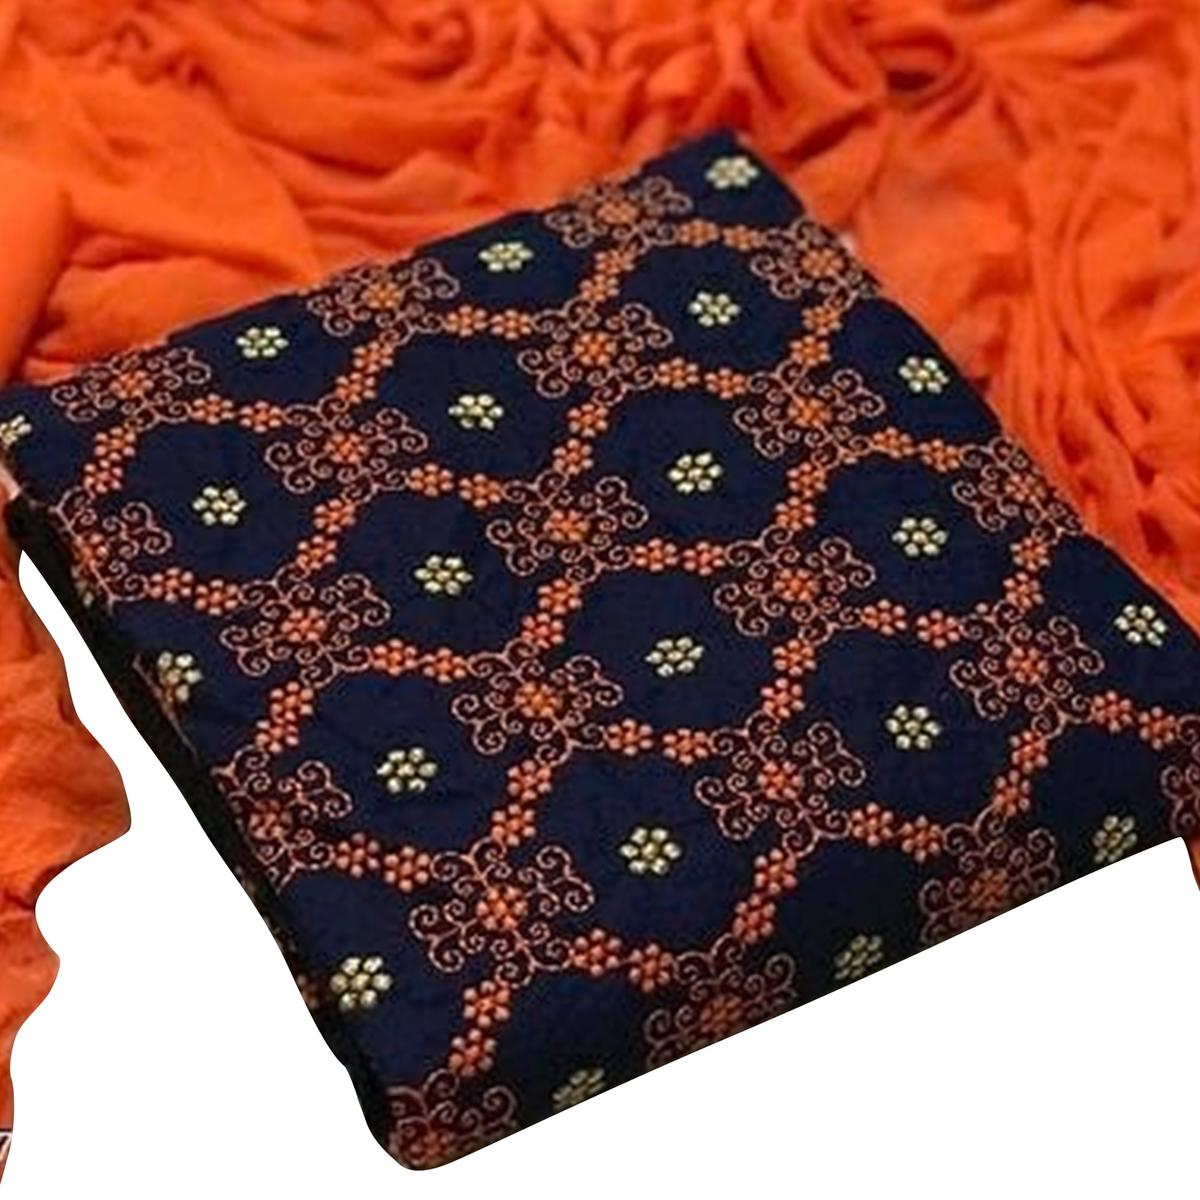 Beautiful Navy Blue-Orange Colored Partywear Embroidered Cotton Dress Material